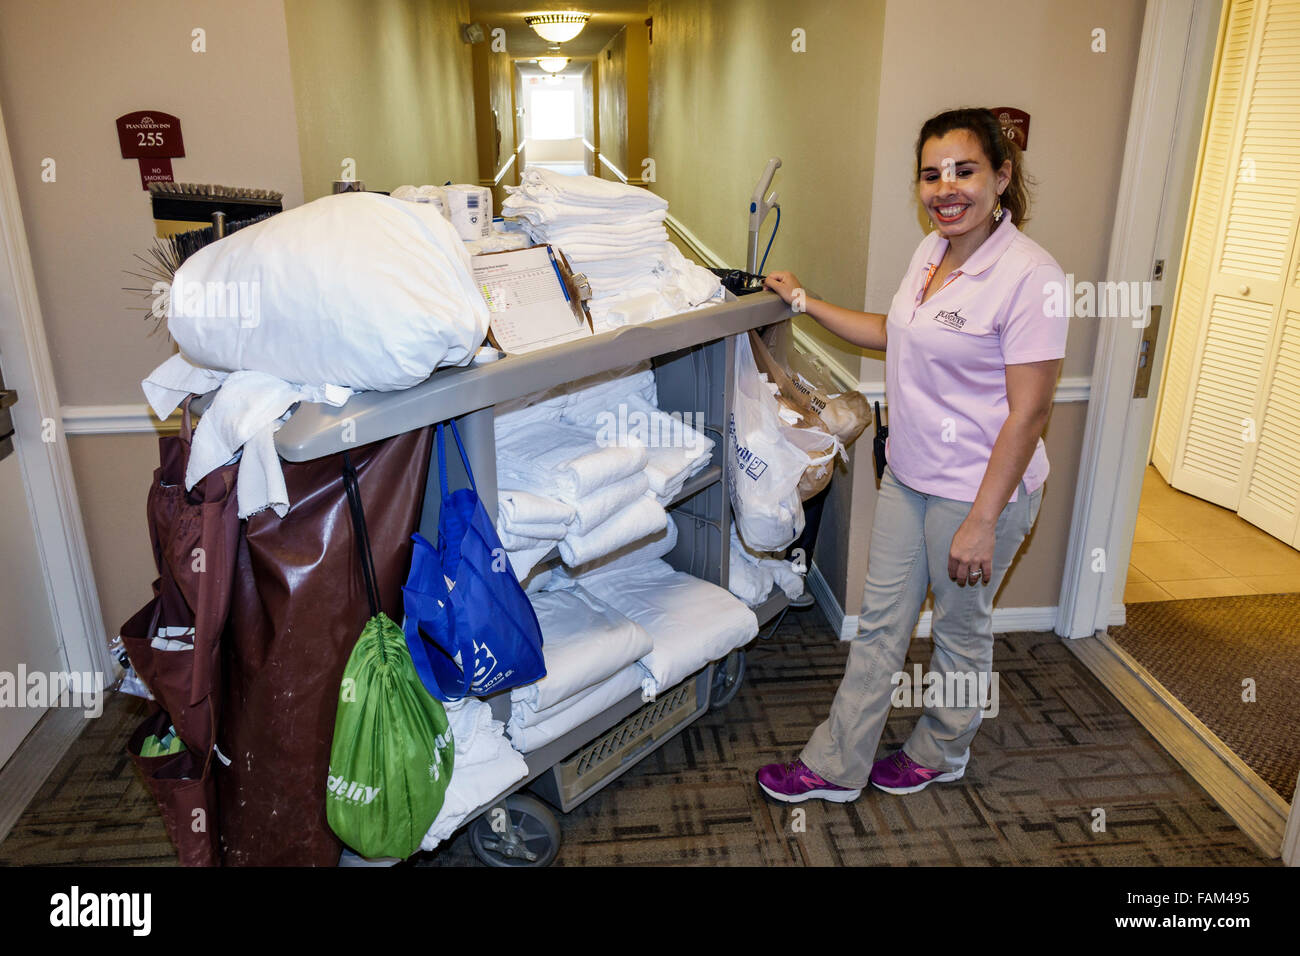 Holiday Inn Express Housekeeping Uniforms Pictures To Pin